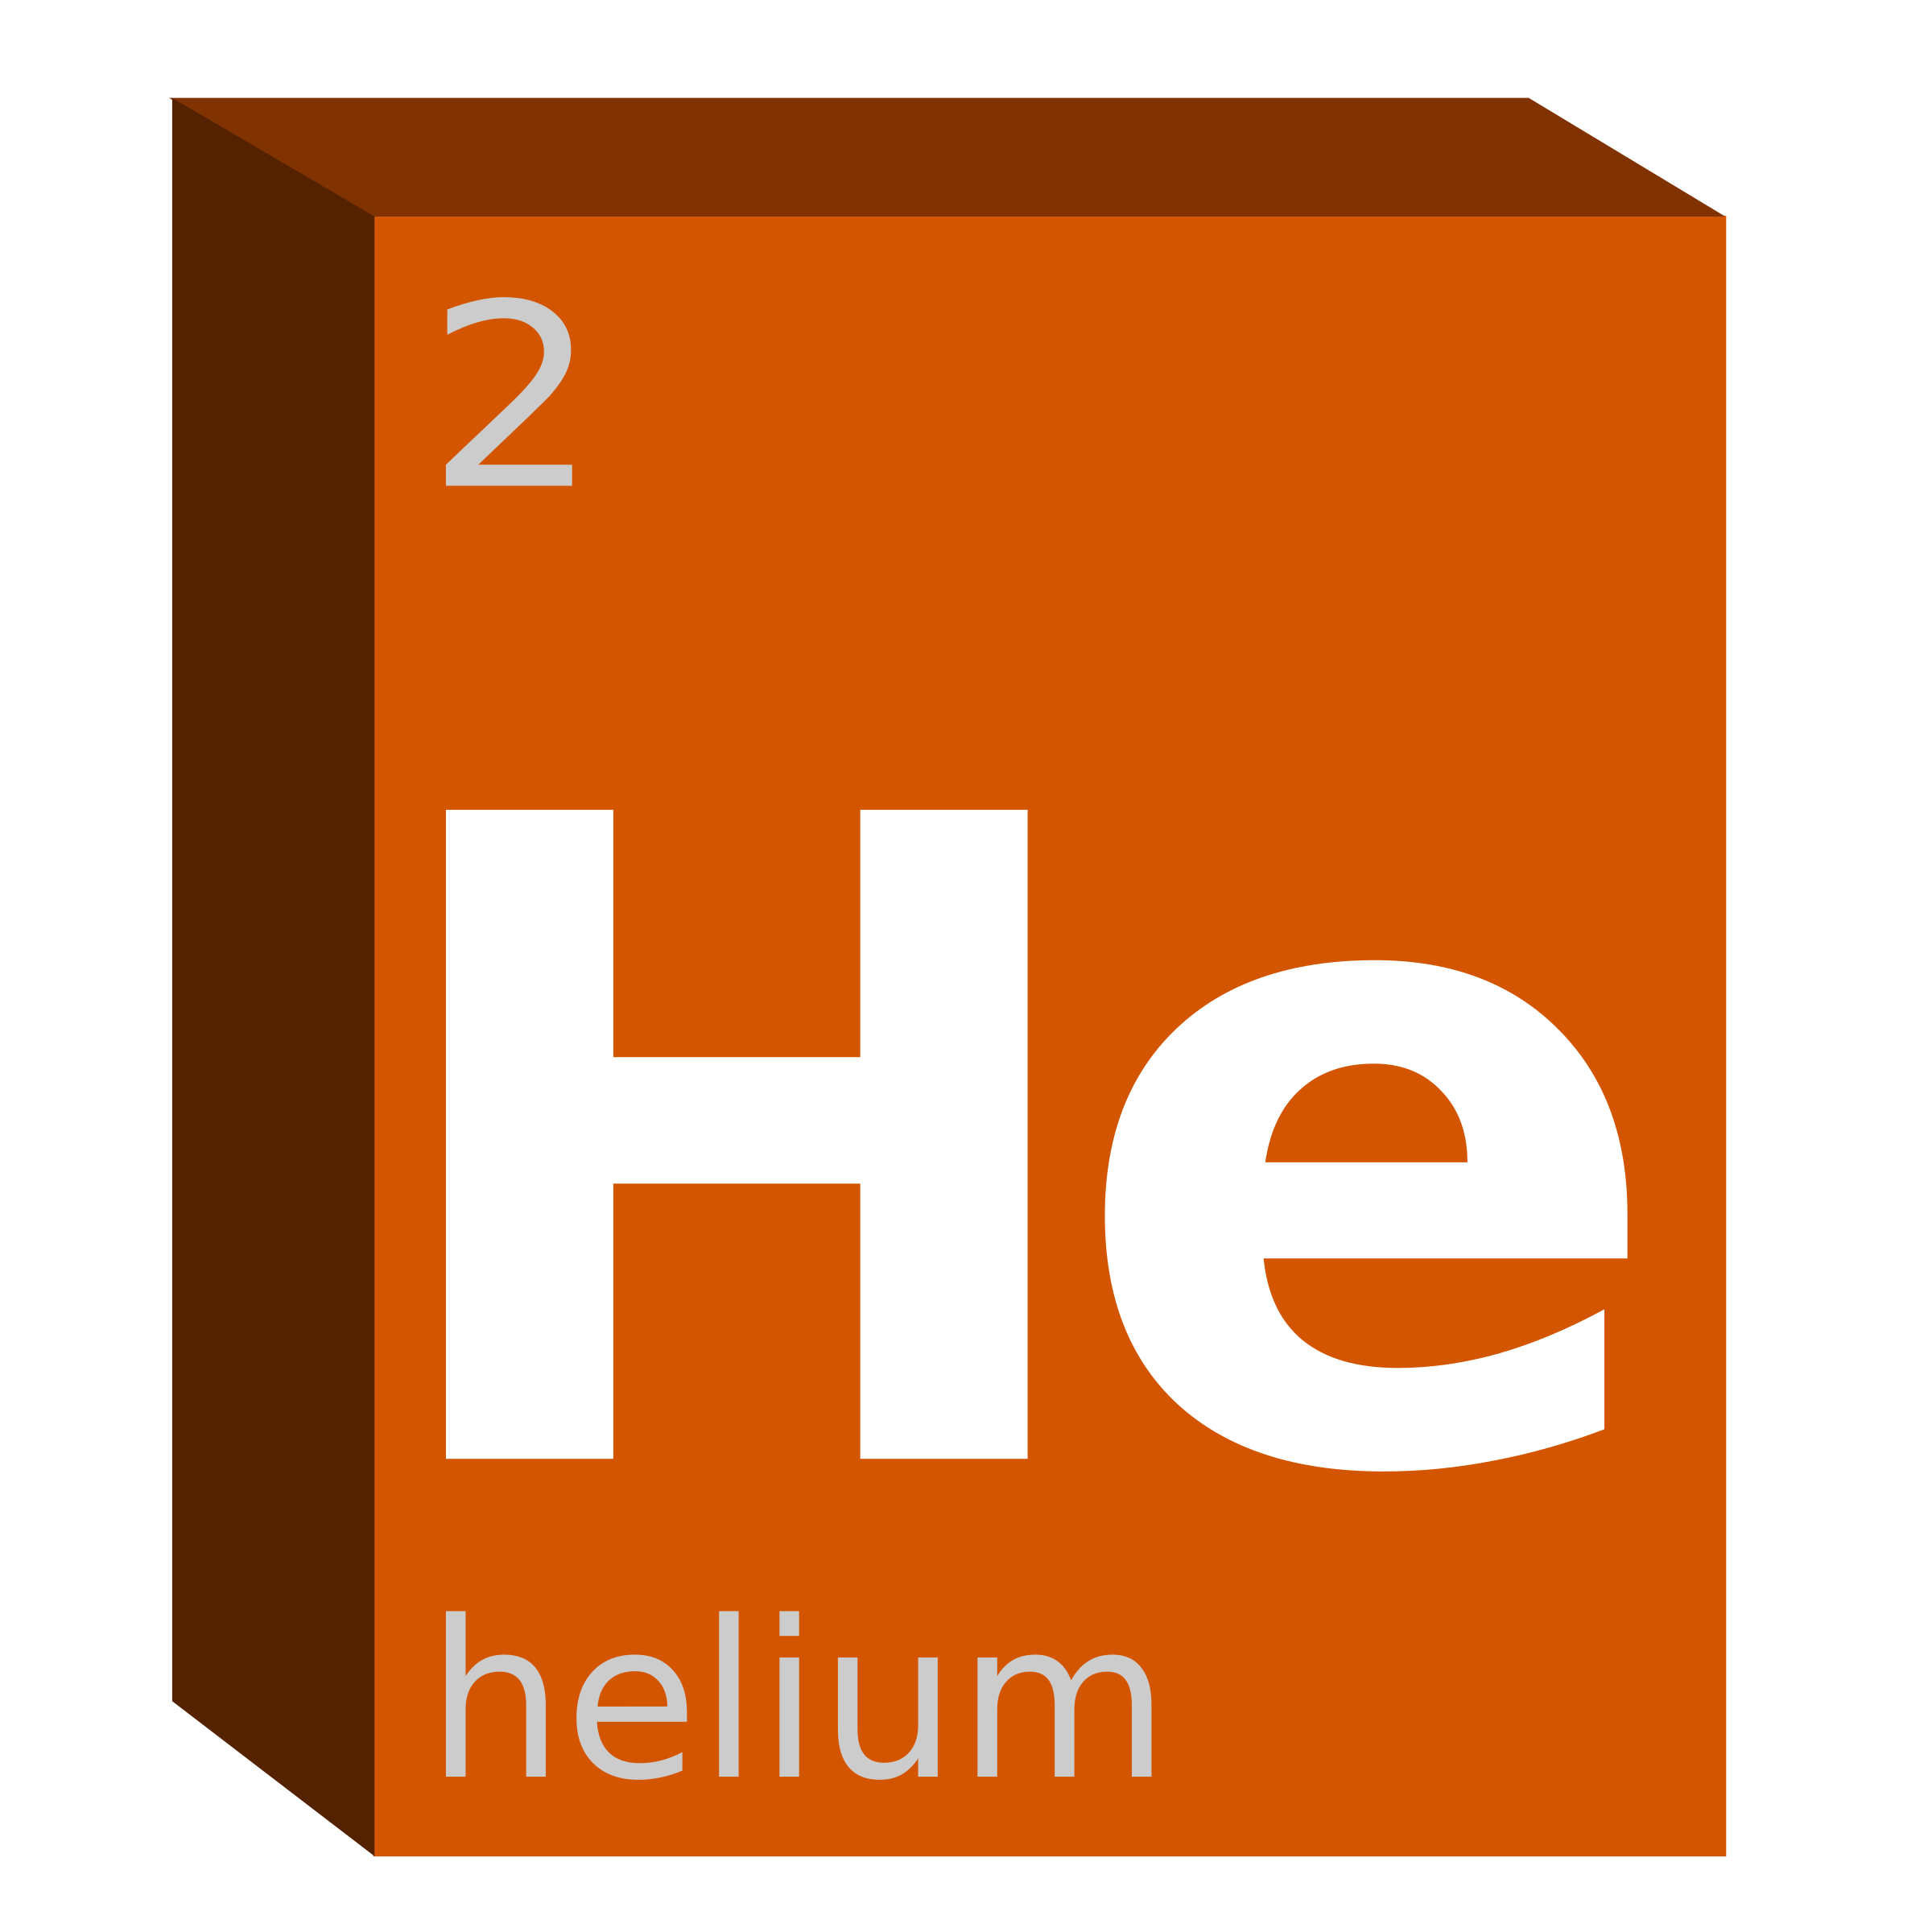 Element clipart mercury Block (He) Block Helium Chemistry